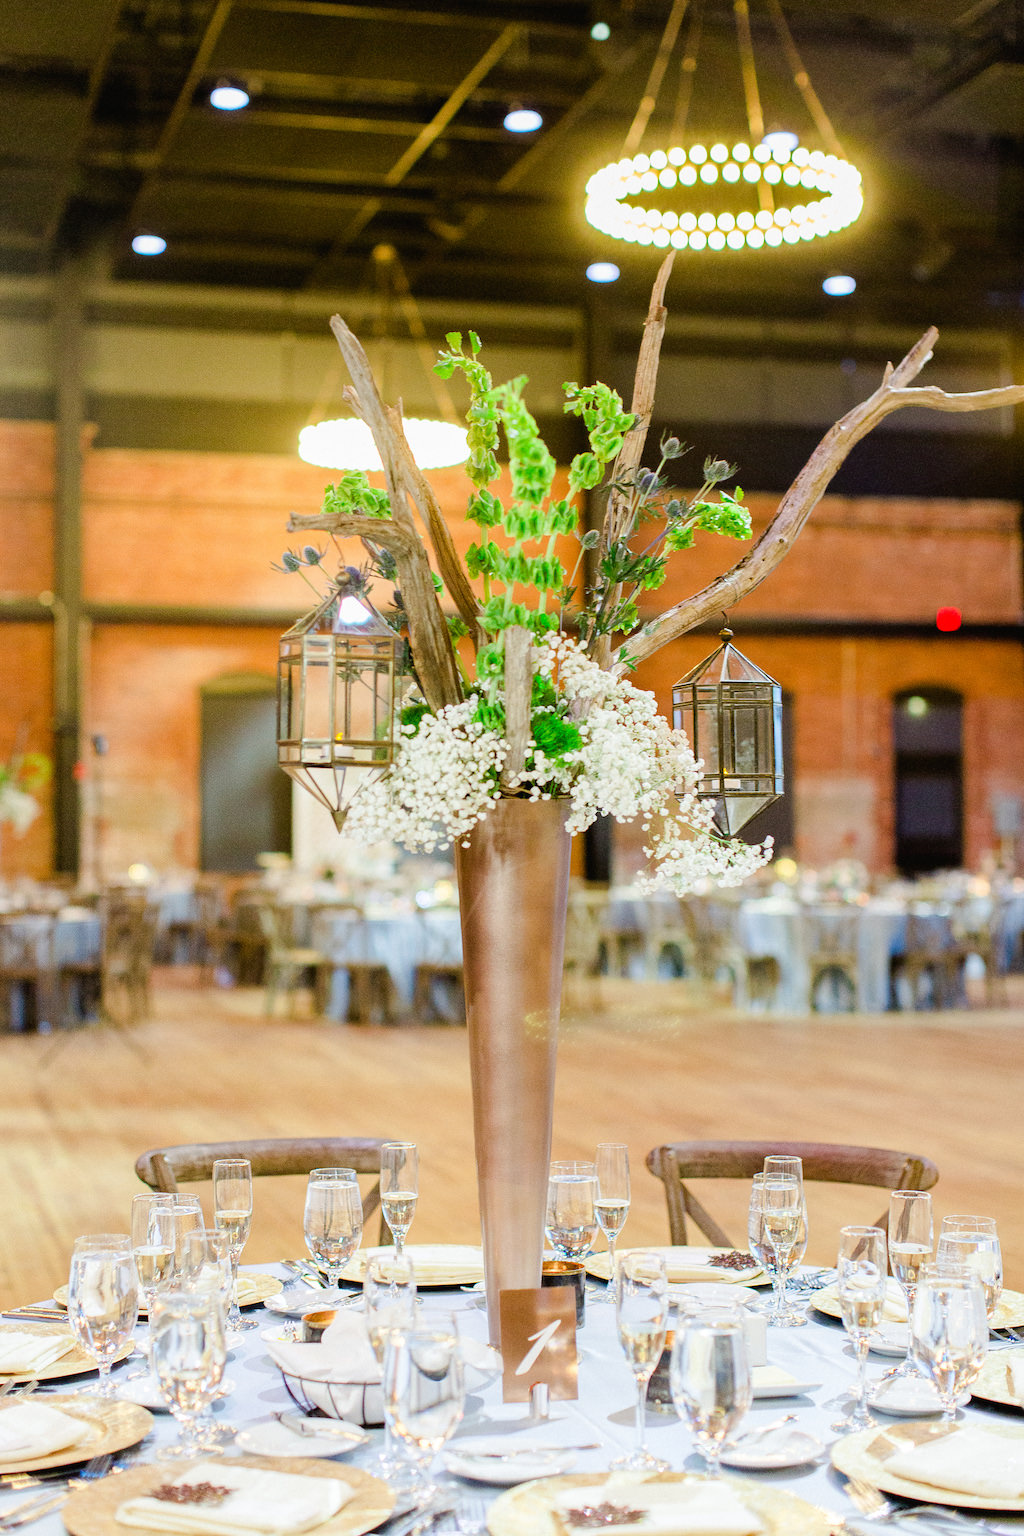 Nature Inspired Wedding Reception Decor, Tall Bronze Vase with Wooden Branches, Greenery, White Baby's Breath and Hanging Lanterns Centerpiece